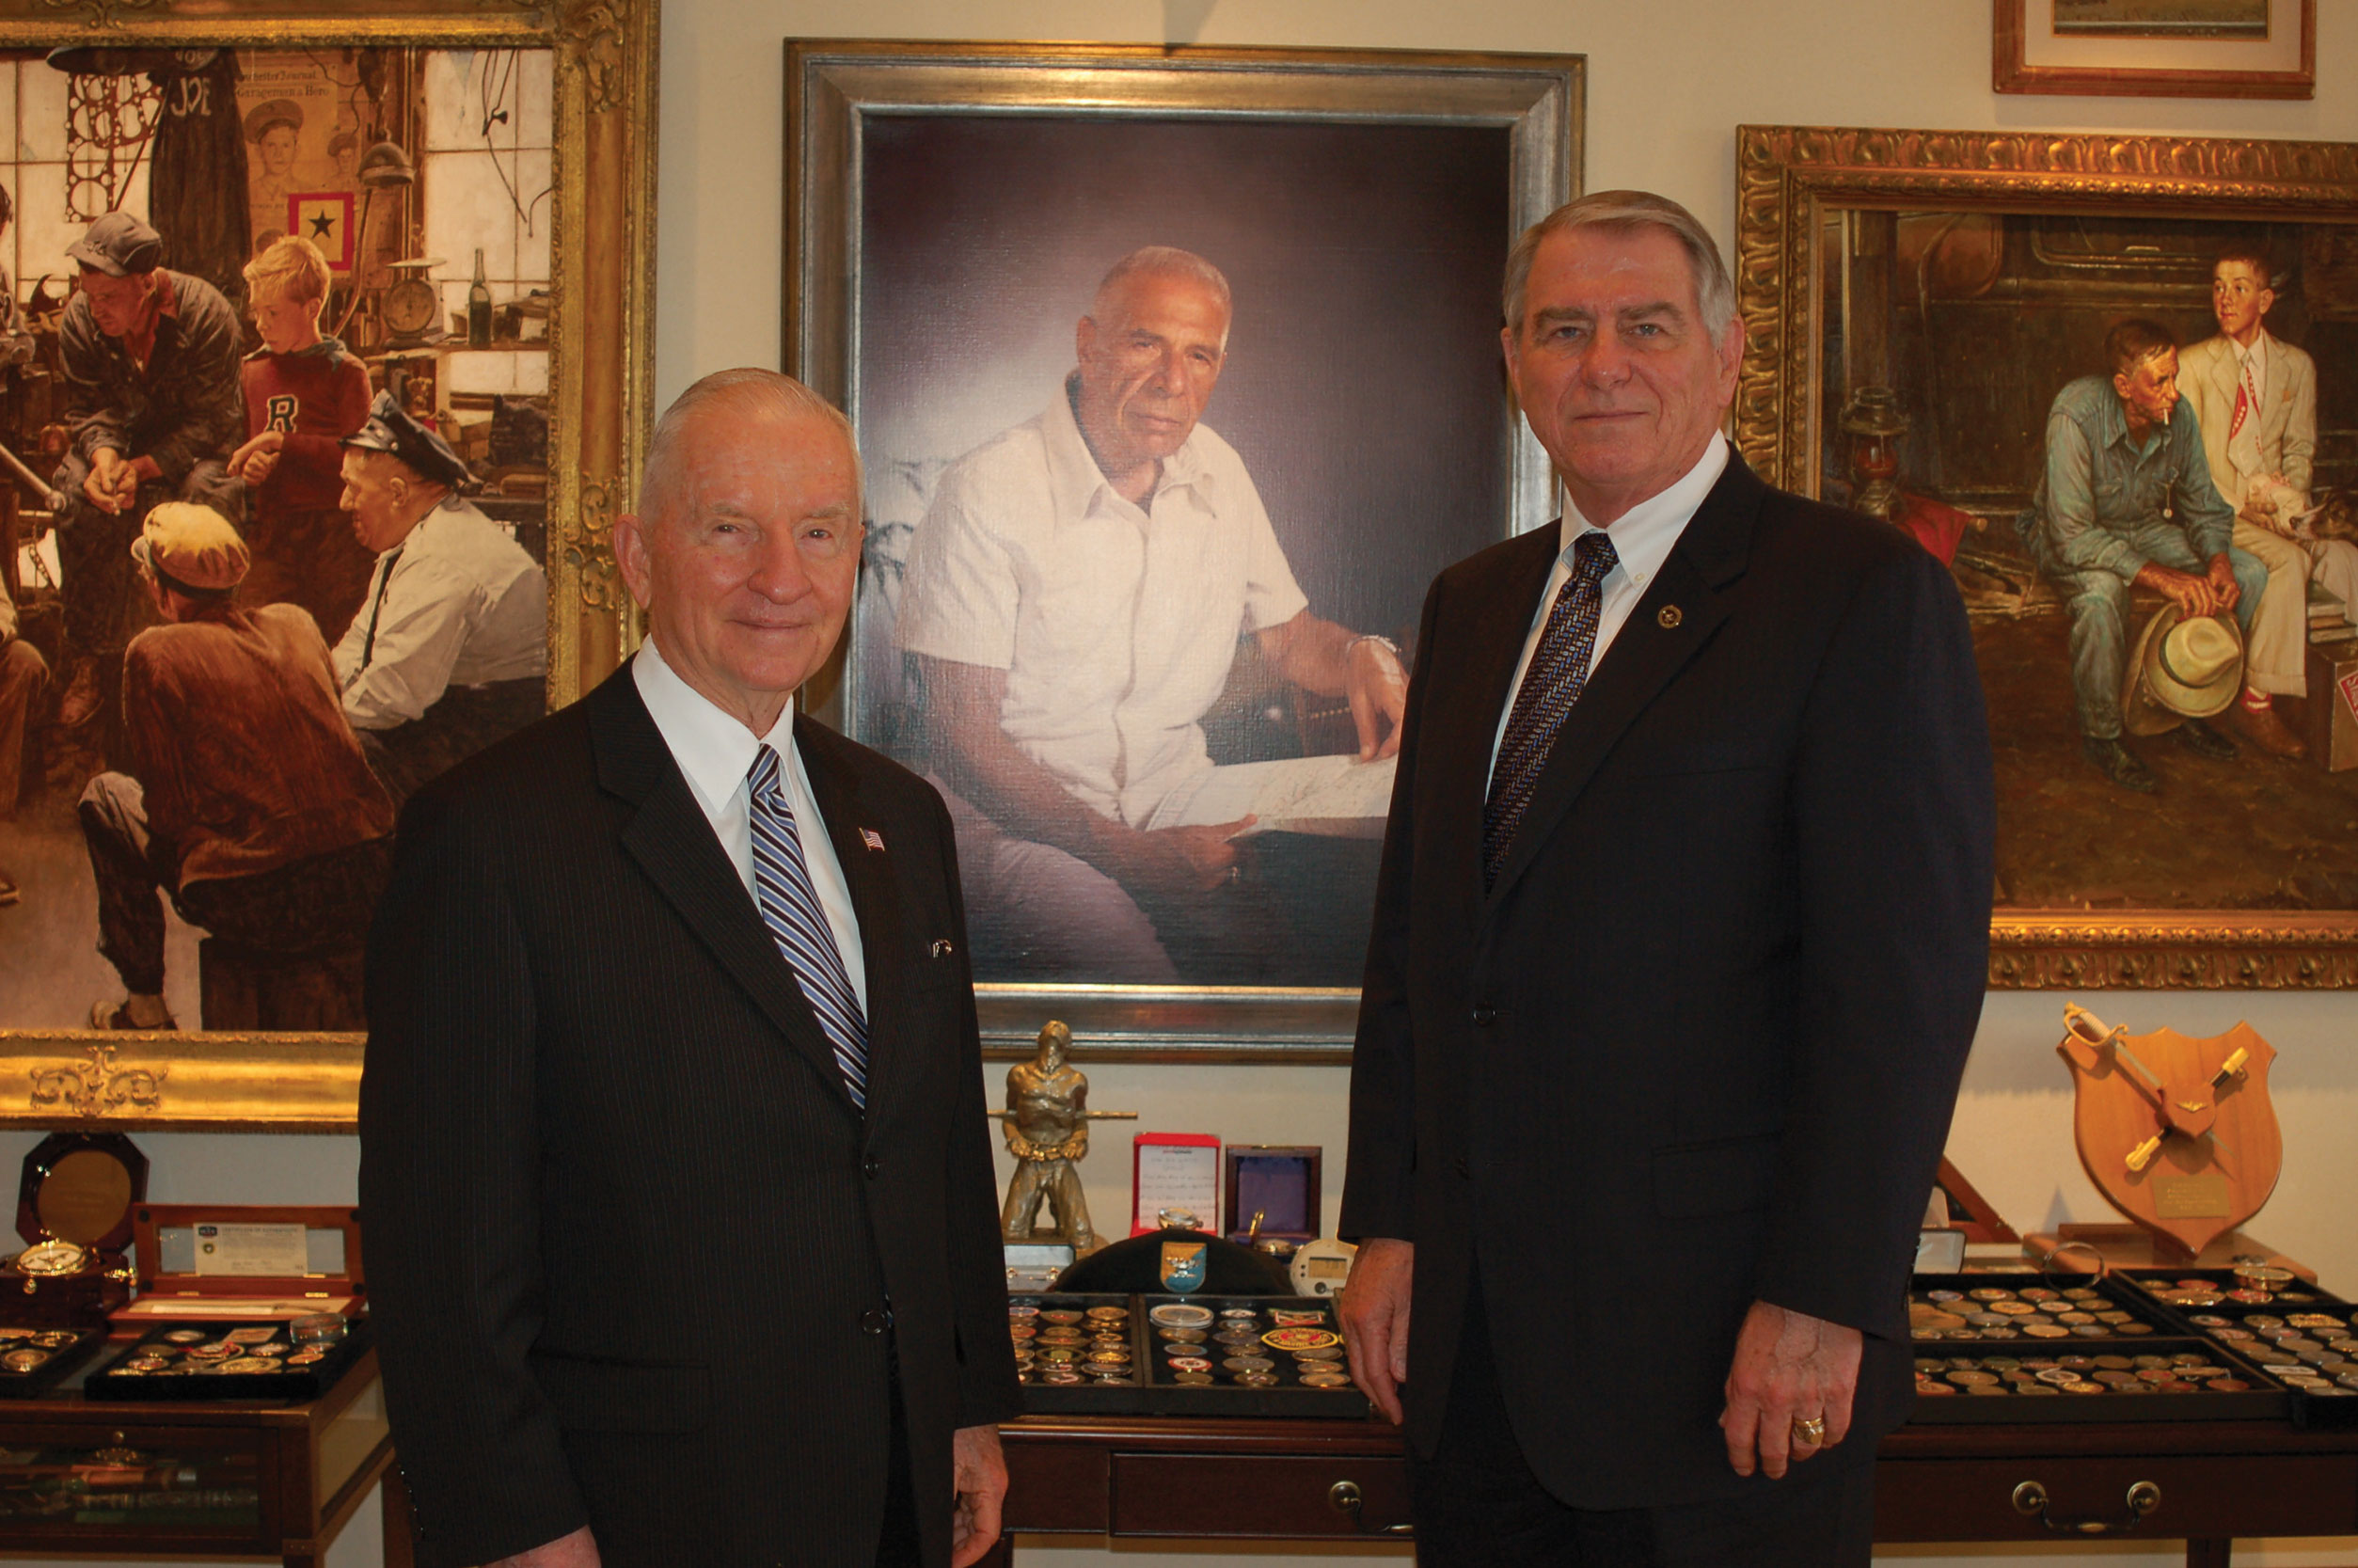 """H. Ross Perot, left, and CGSC Foundation CEO Bob Ulin stand in front of a portrait of Col. Arthur D. """"Bull"""" Simons in Perot's office in Plano, Texas, during a visit in January 2010."""